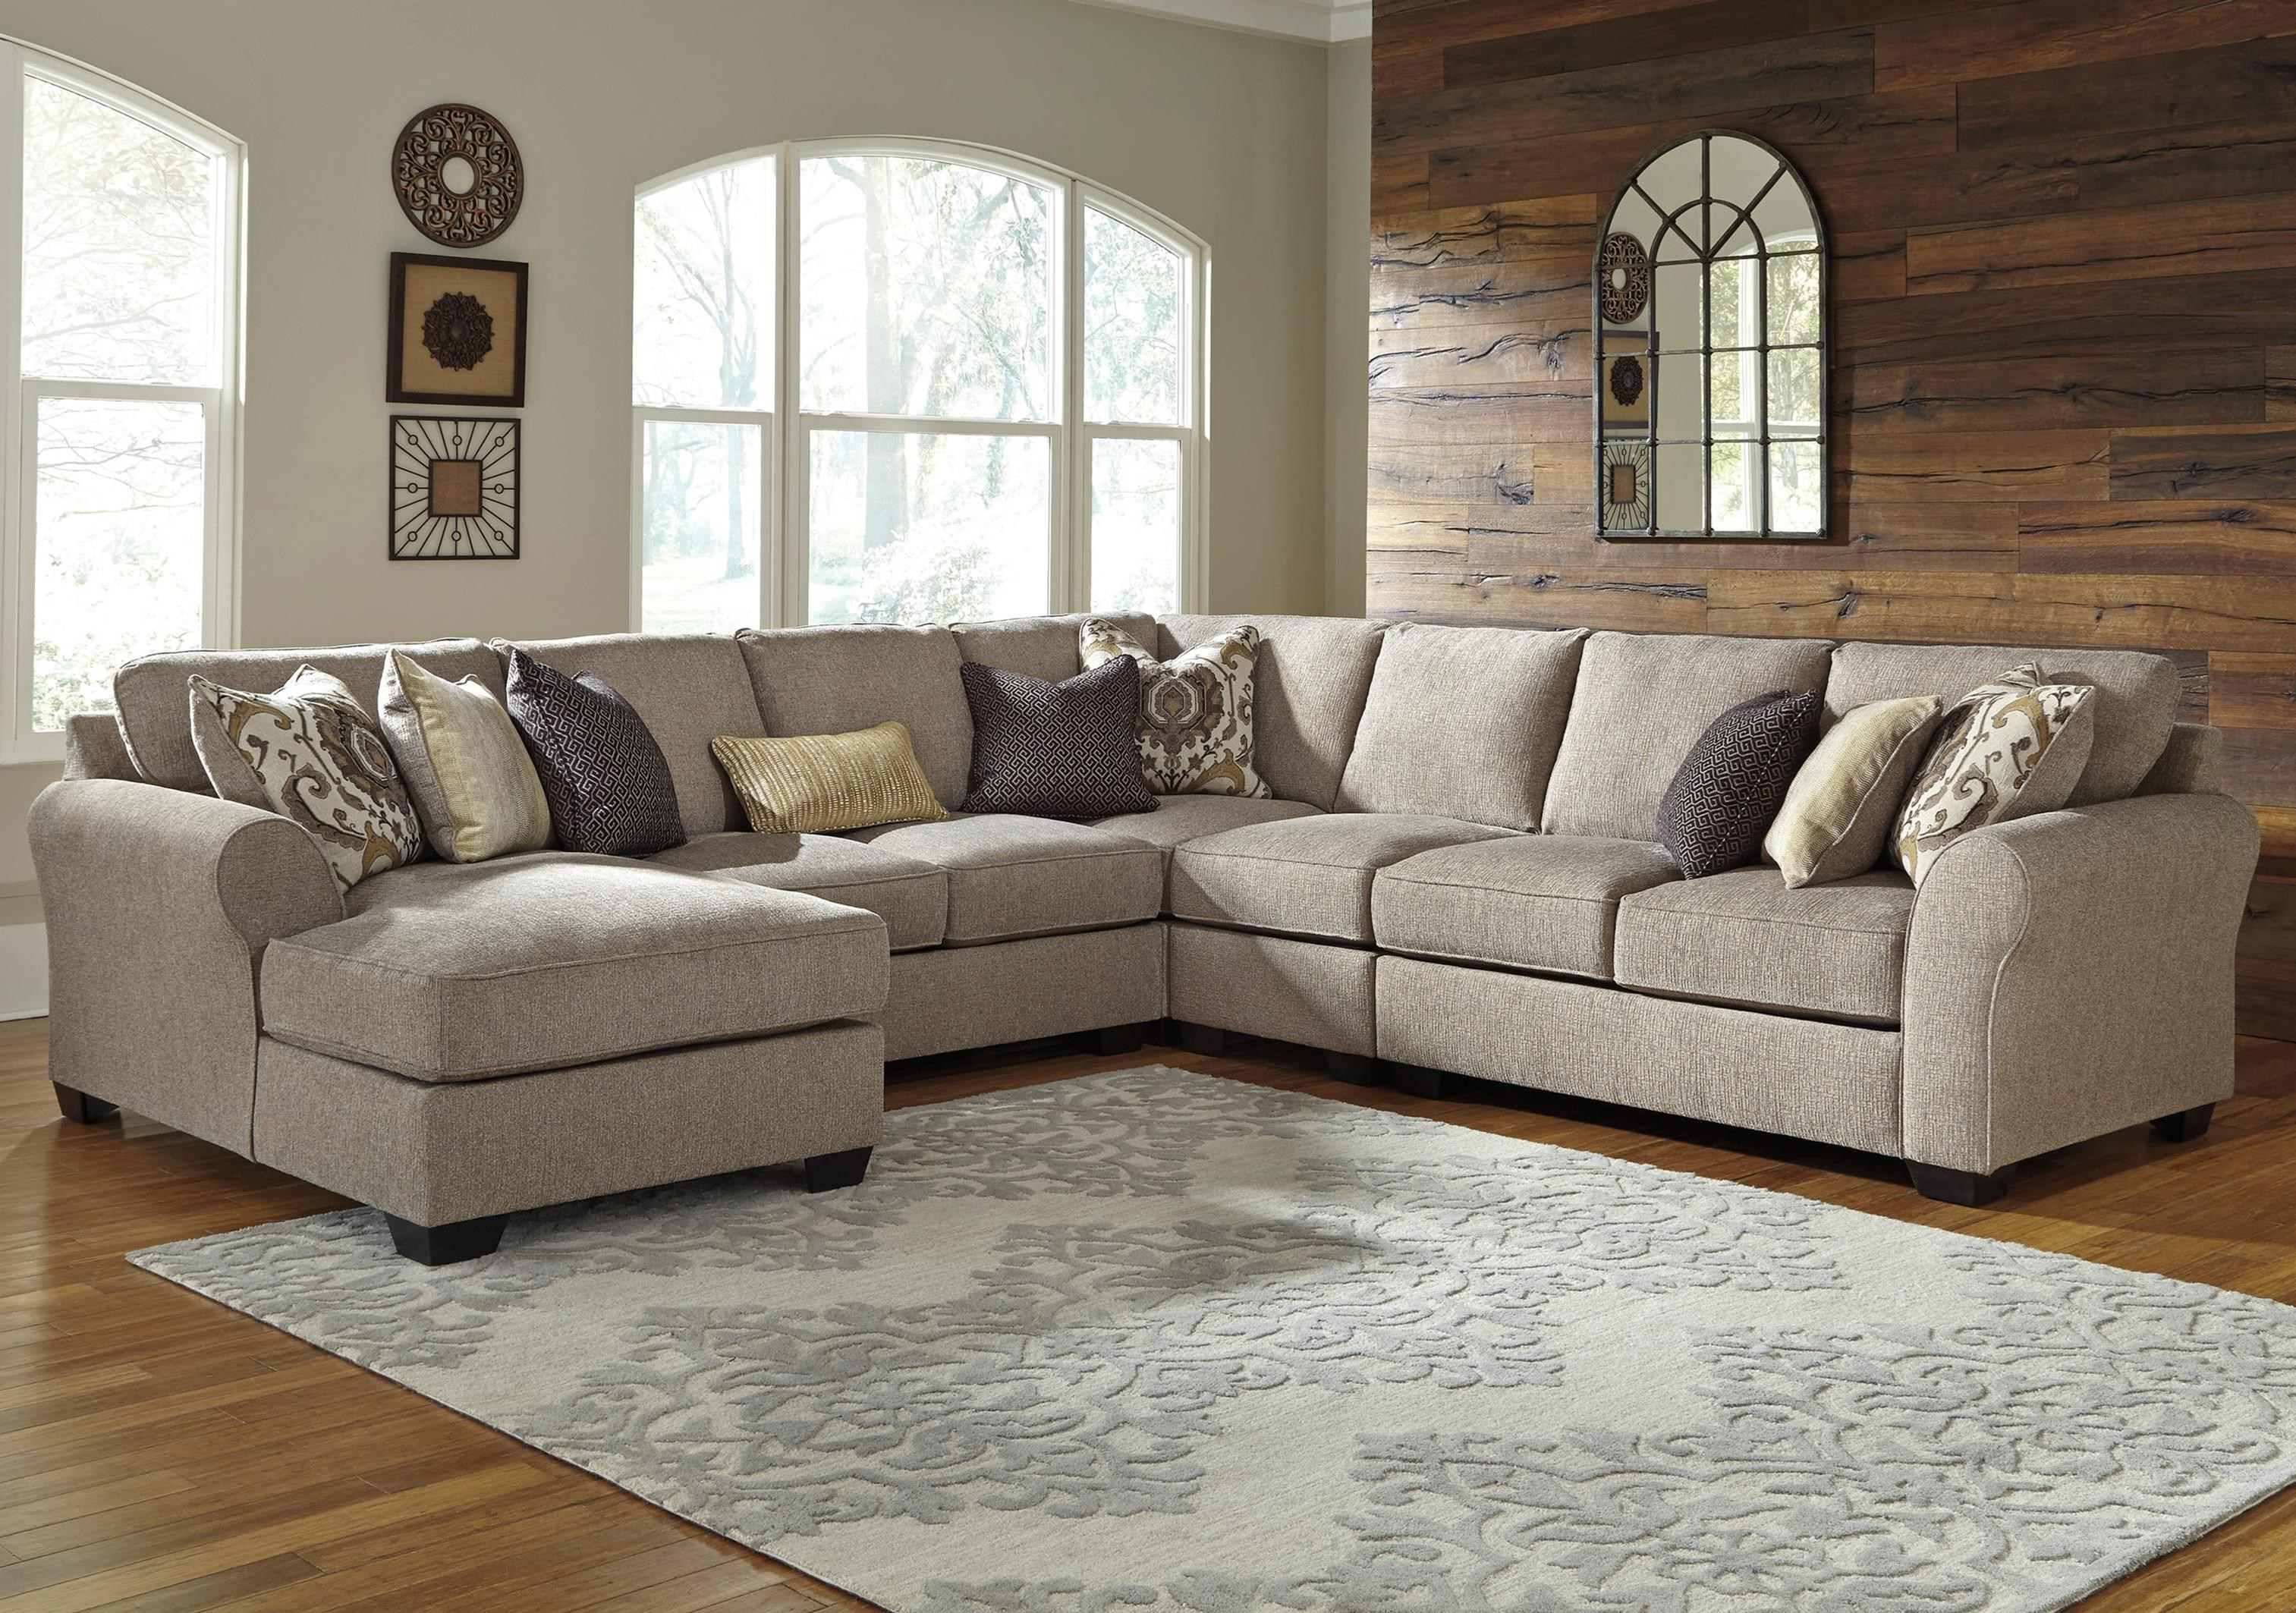 Del Sol AB Pantomine 5Piece Sectional with Left Chaise